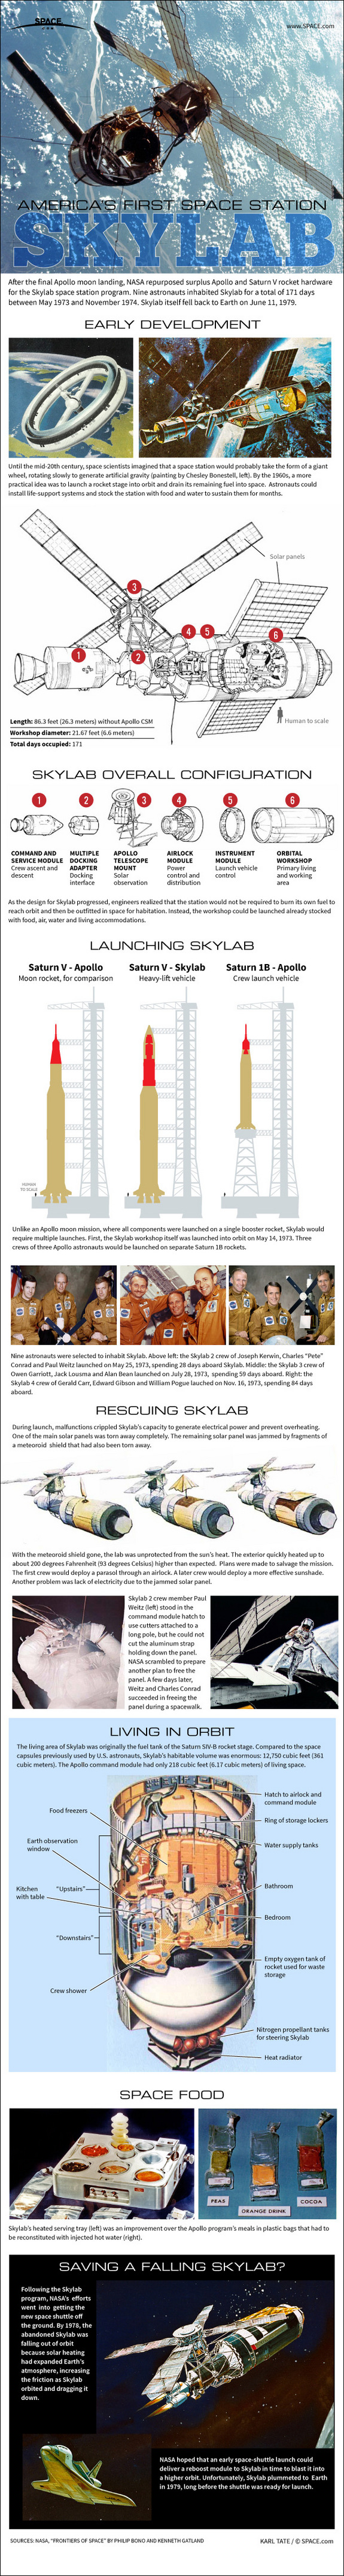 Find out how the International Space Station's ammonia cooling system works in this SPACE.com infographic.